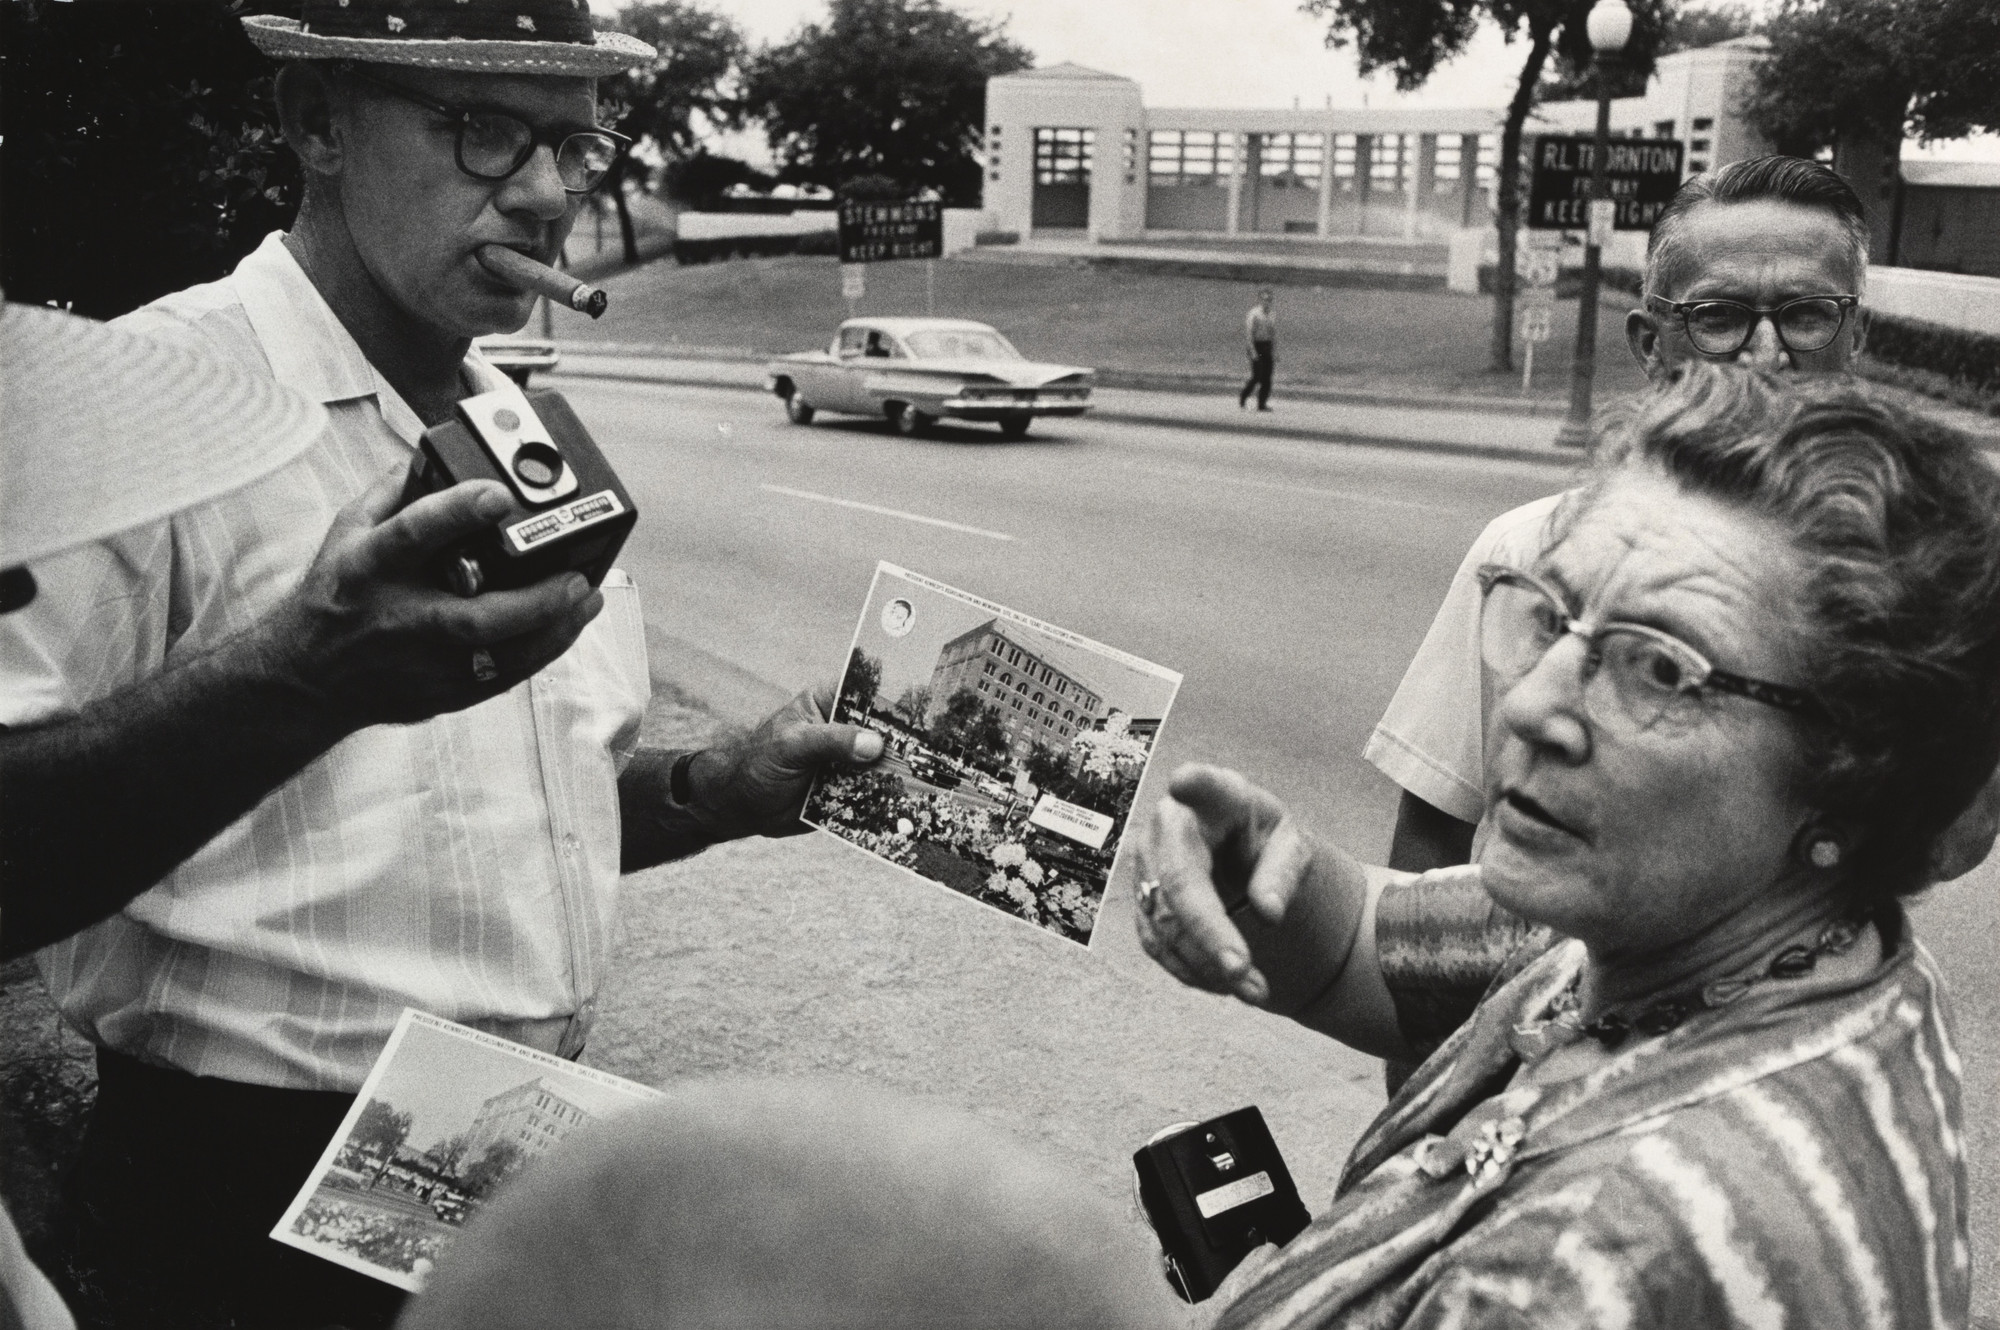 Garry Winogrand. Dealey Plaza, Dallas. 1964